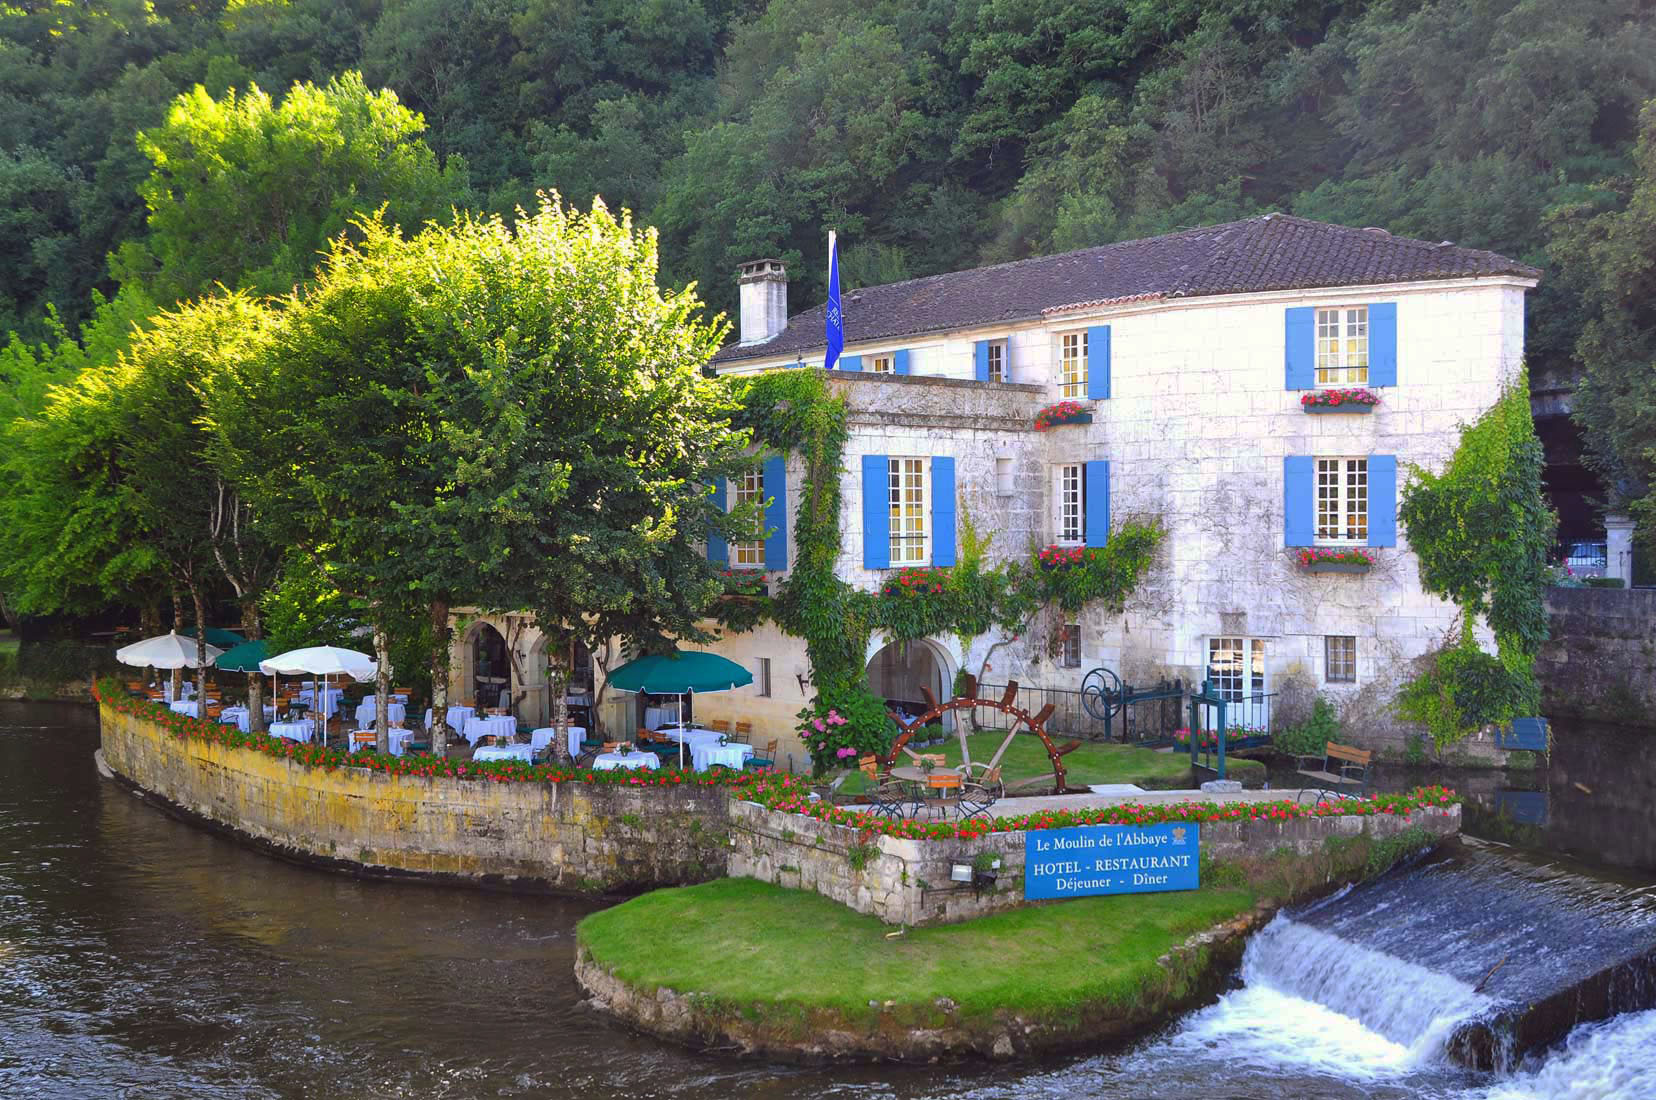 Le moulin de l 39 abbaye a charming french village hotel in for Design hotels south of france